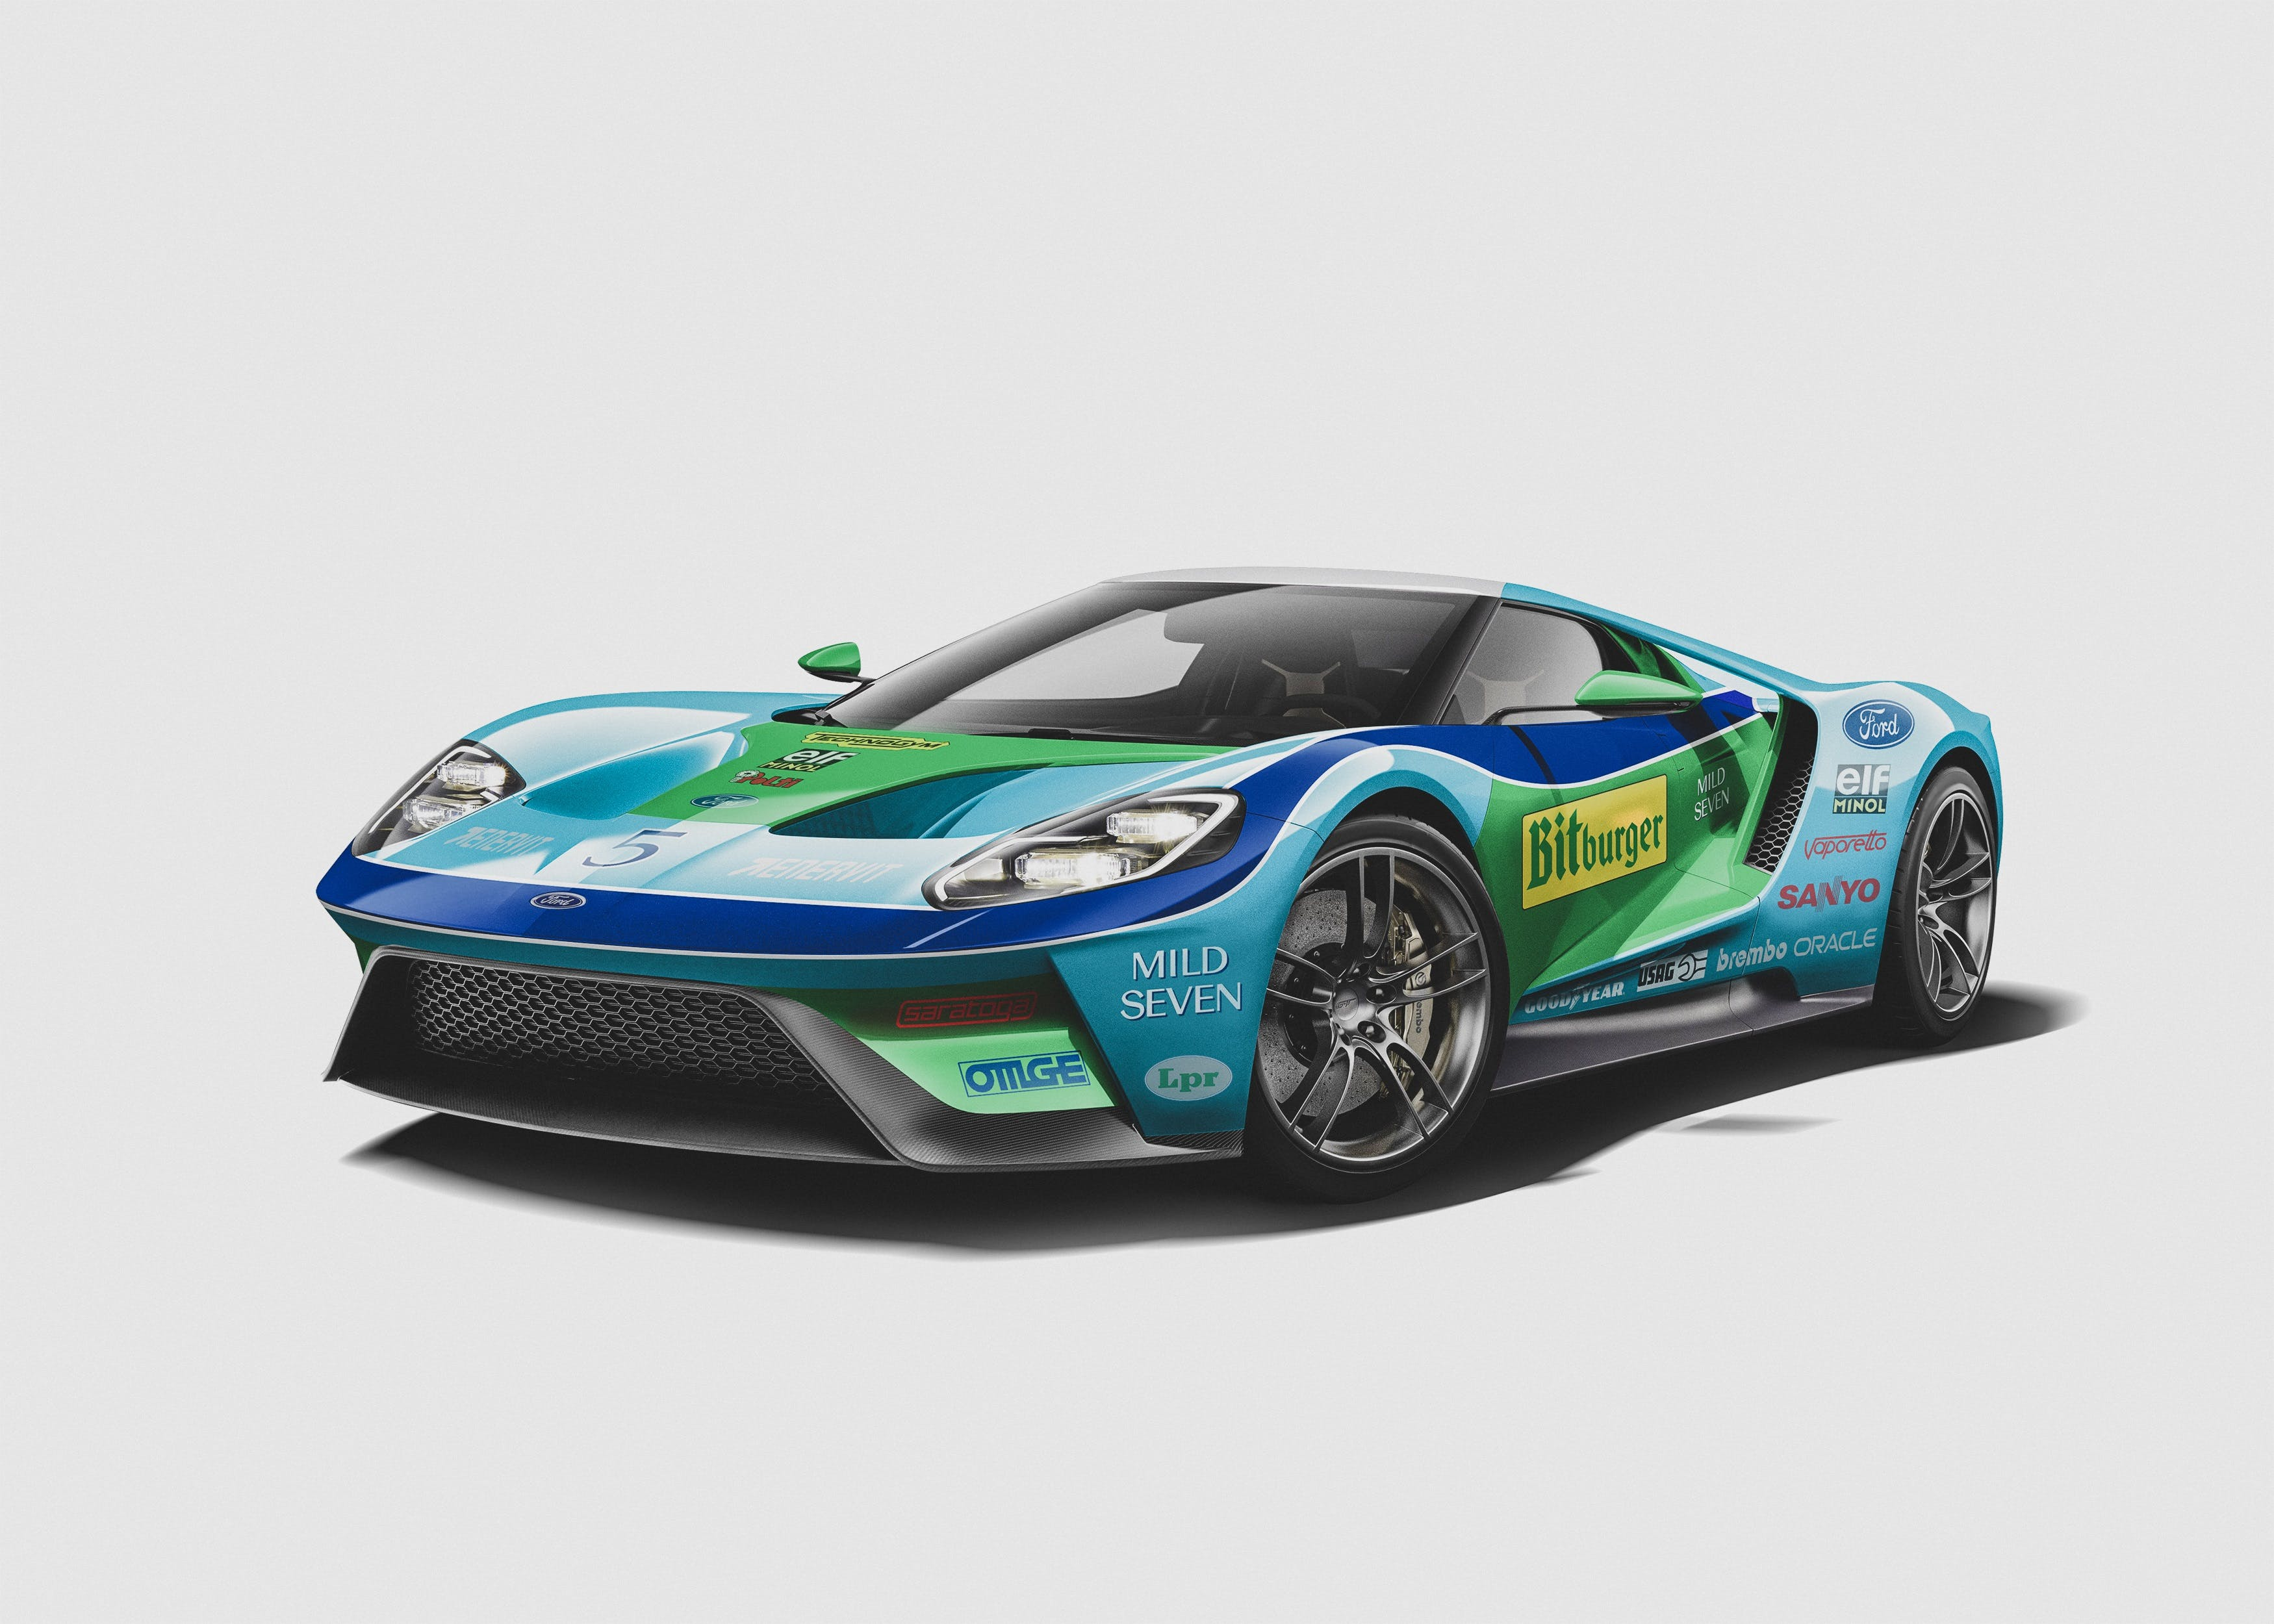 Supercars-with-f1-livery-4